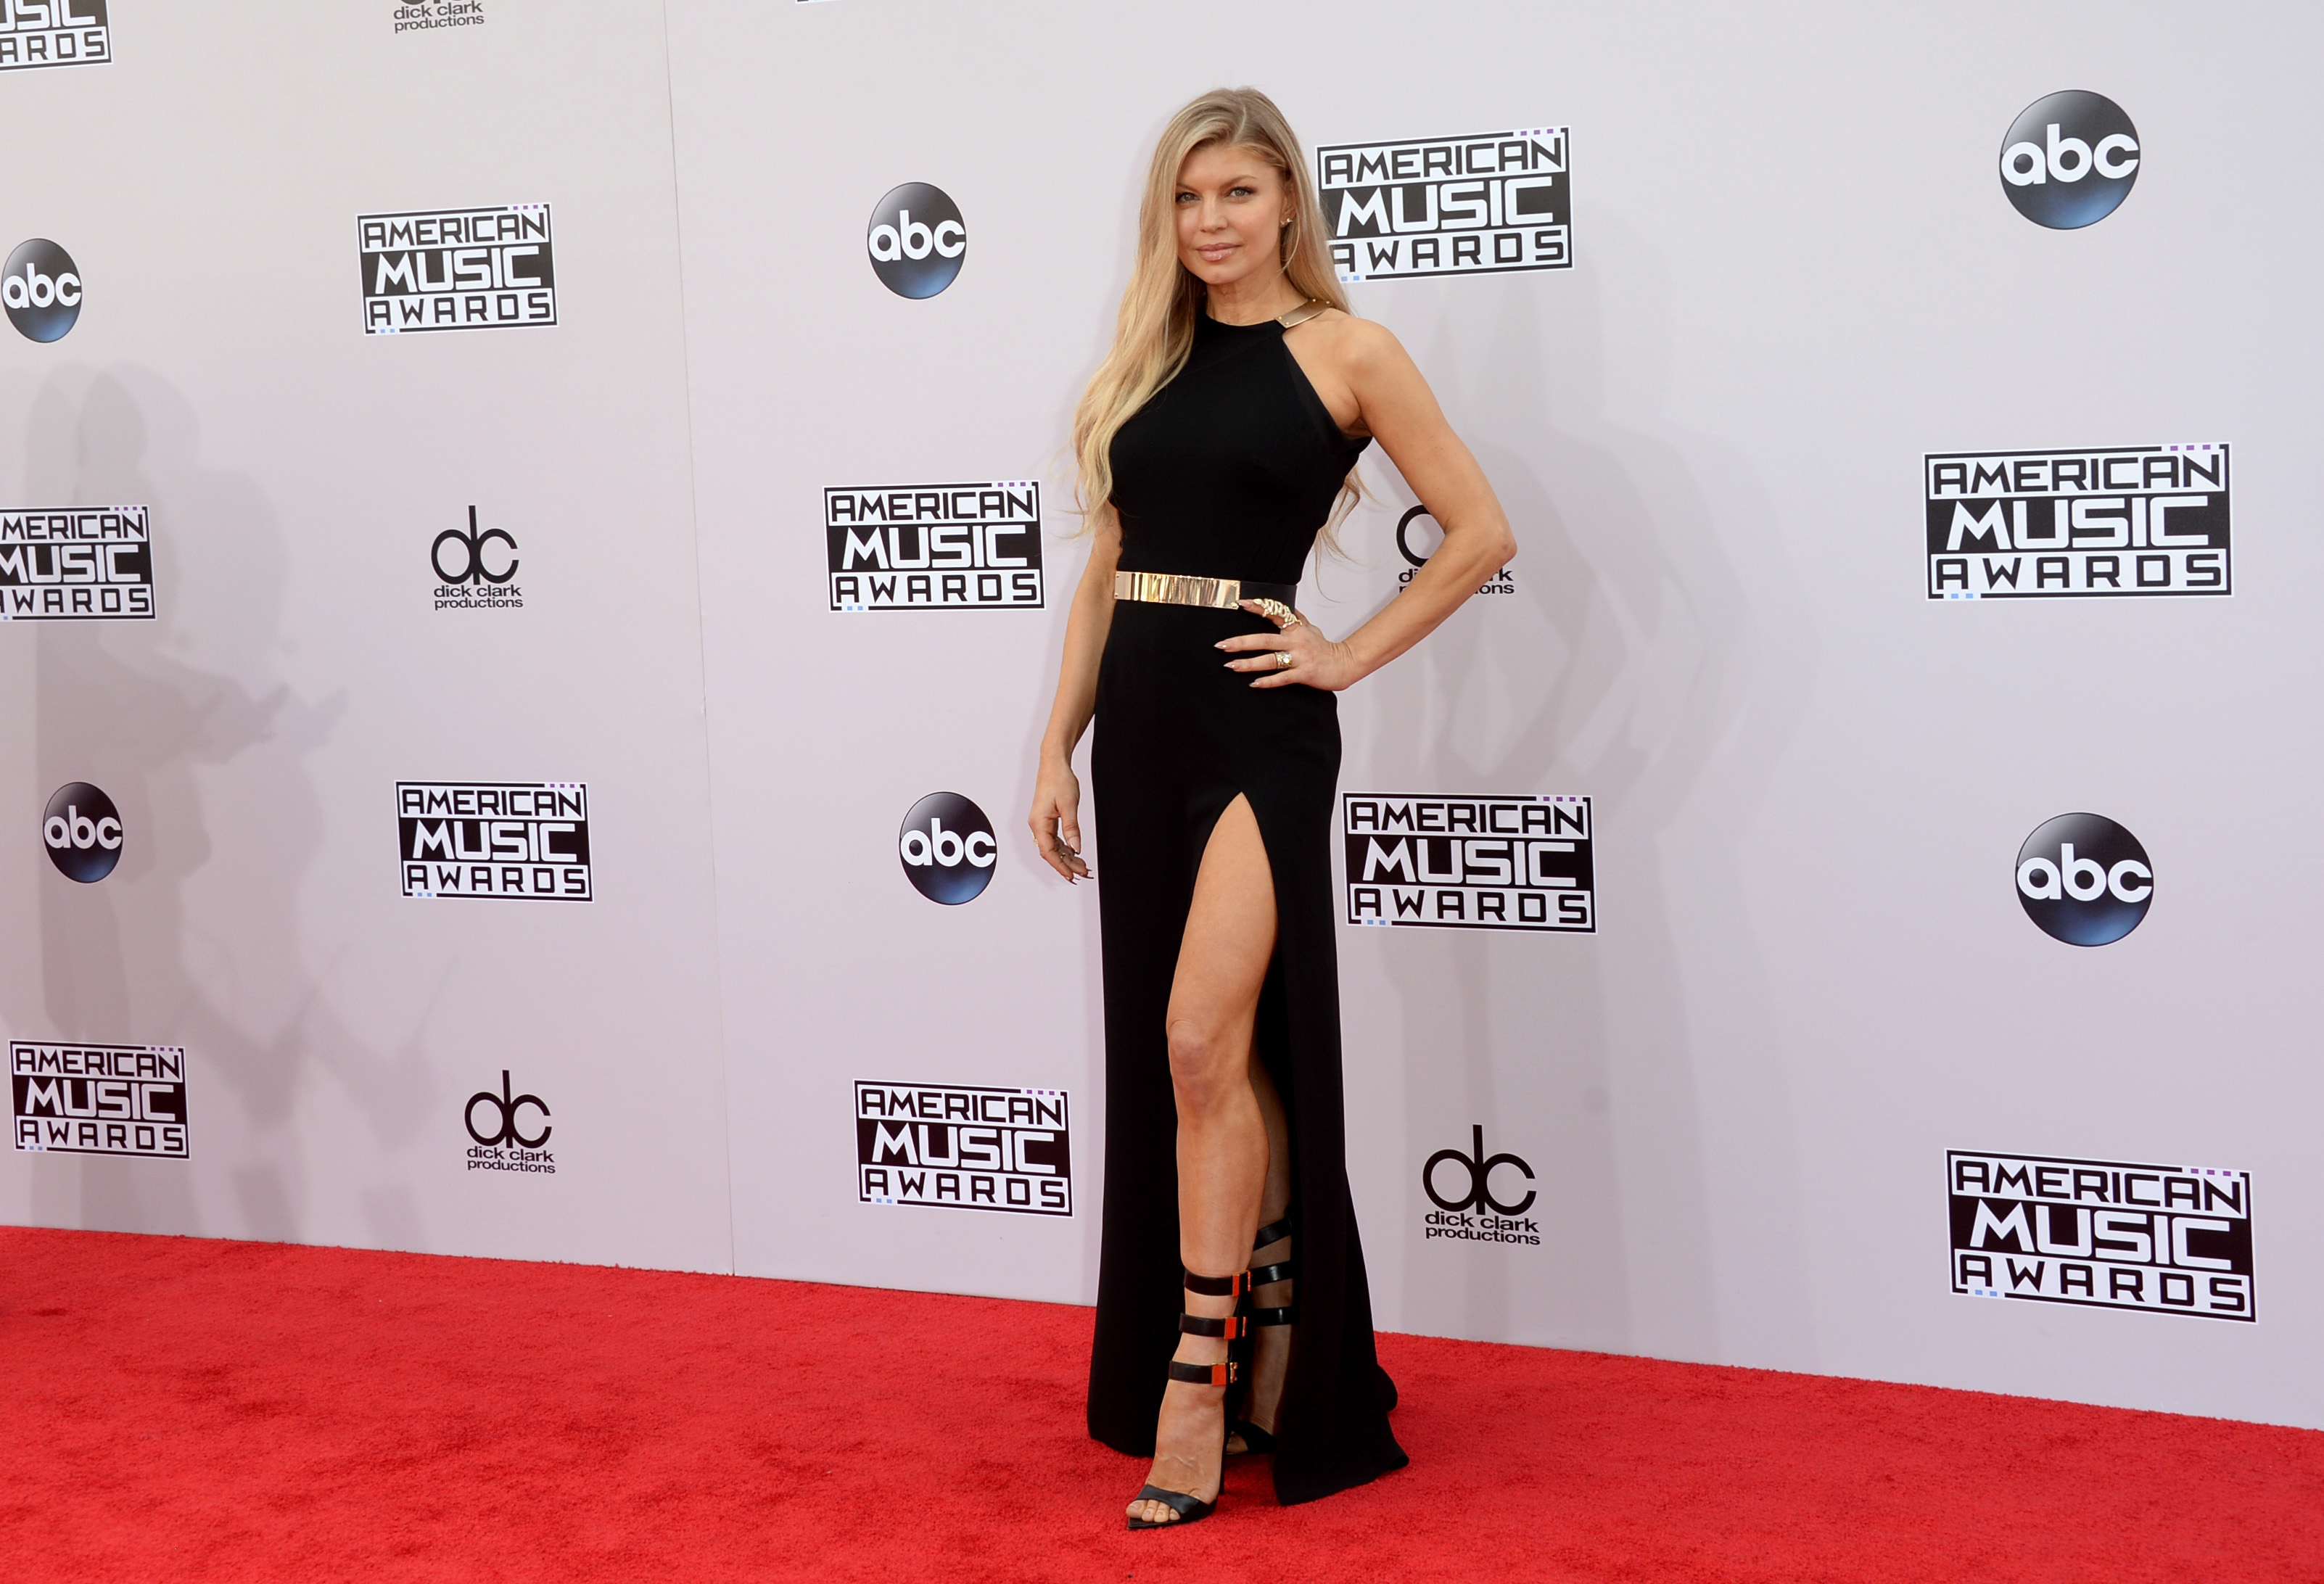 Fergie American Music Awards 2014 Red Carpet Pictures